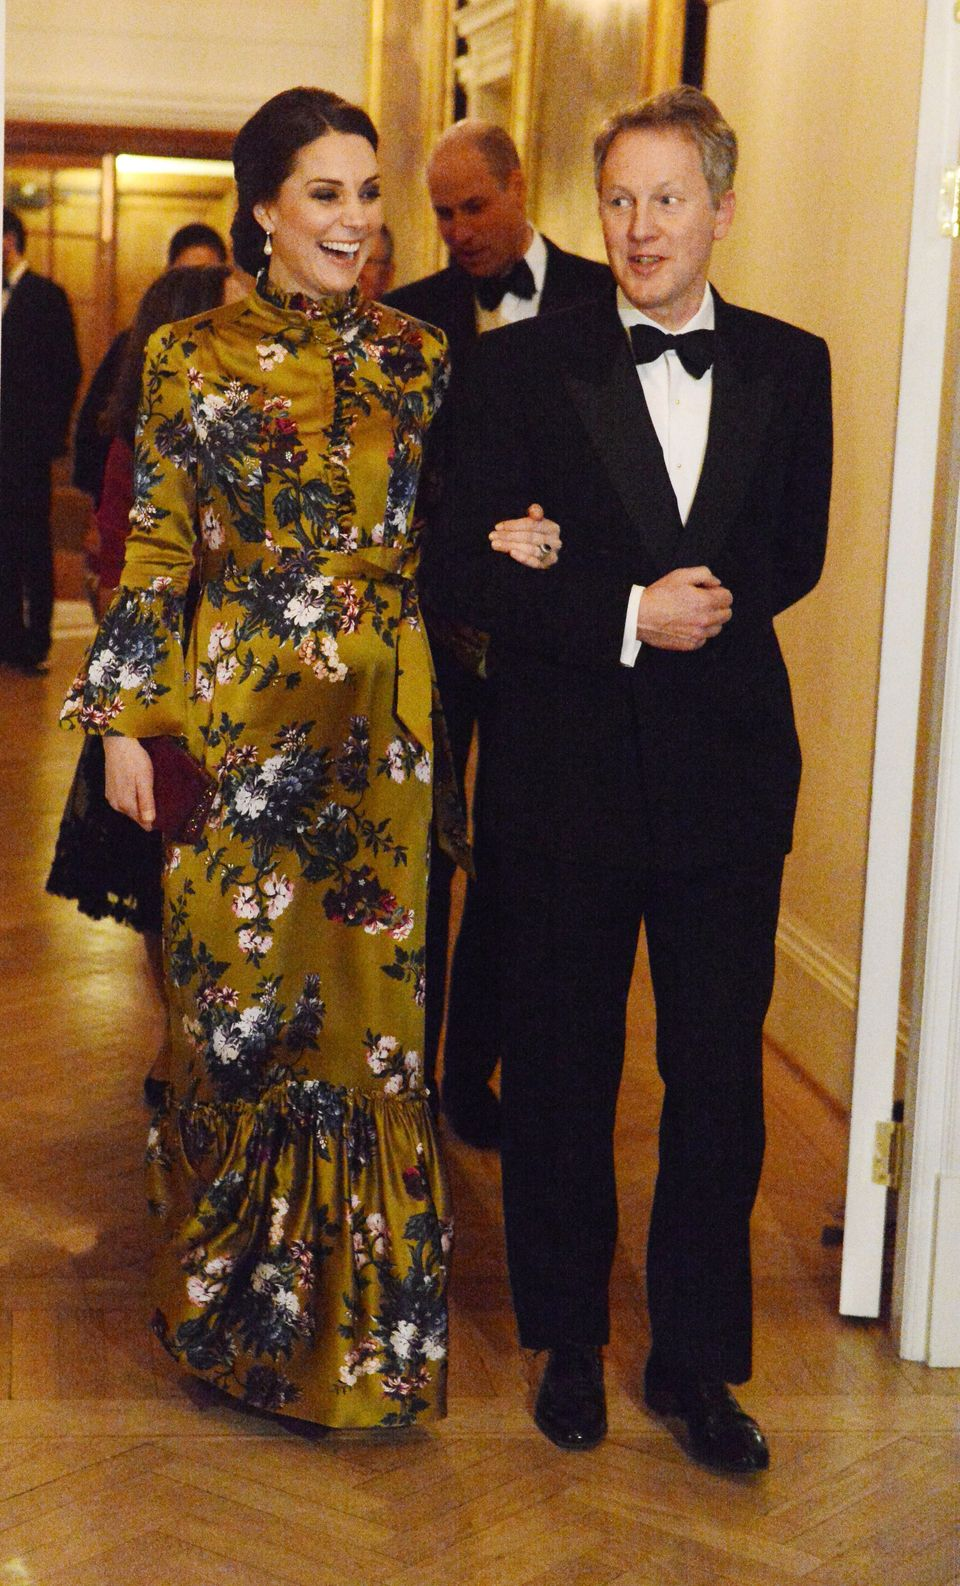 Kateat a reception dinner at the British ambassador's residence on Jan. 30, the first day of the royal visit to Sweden